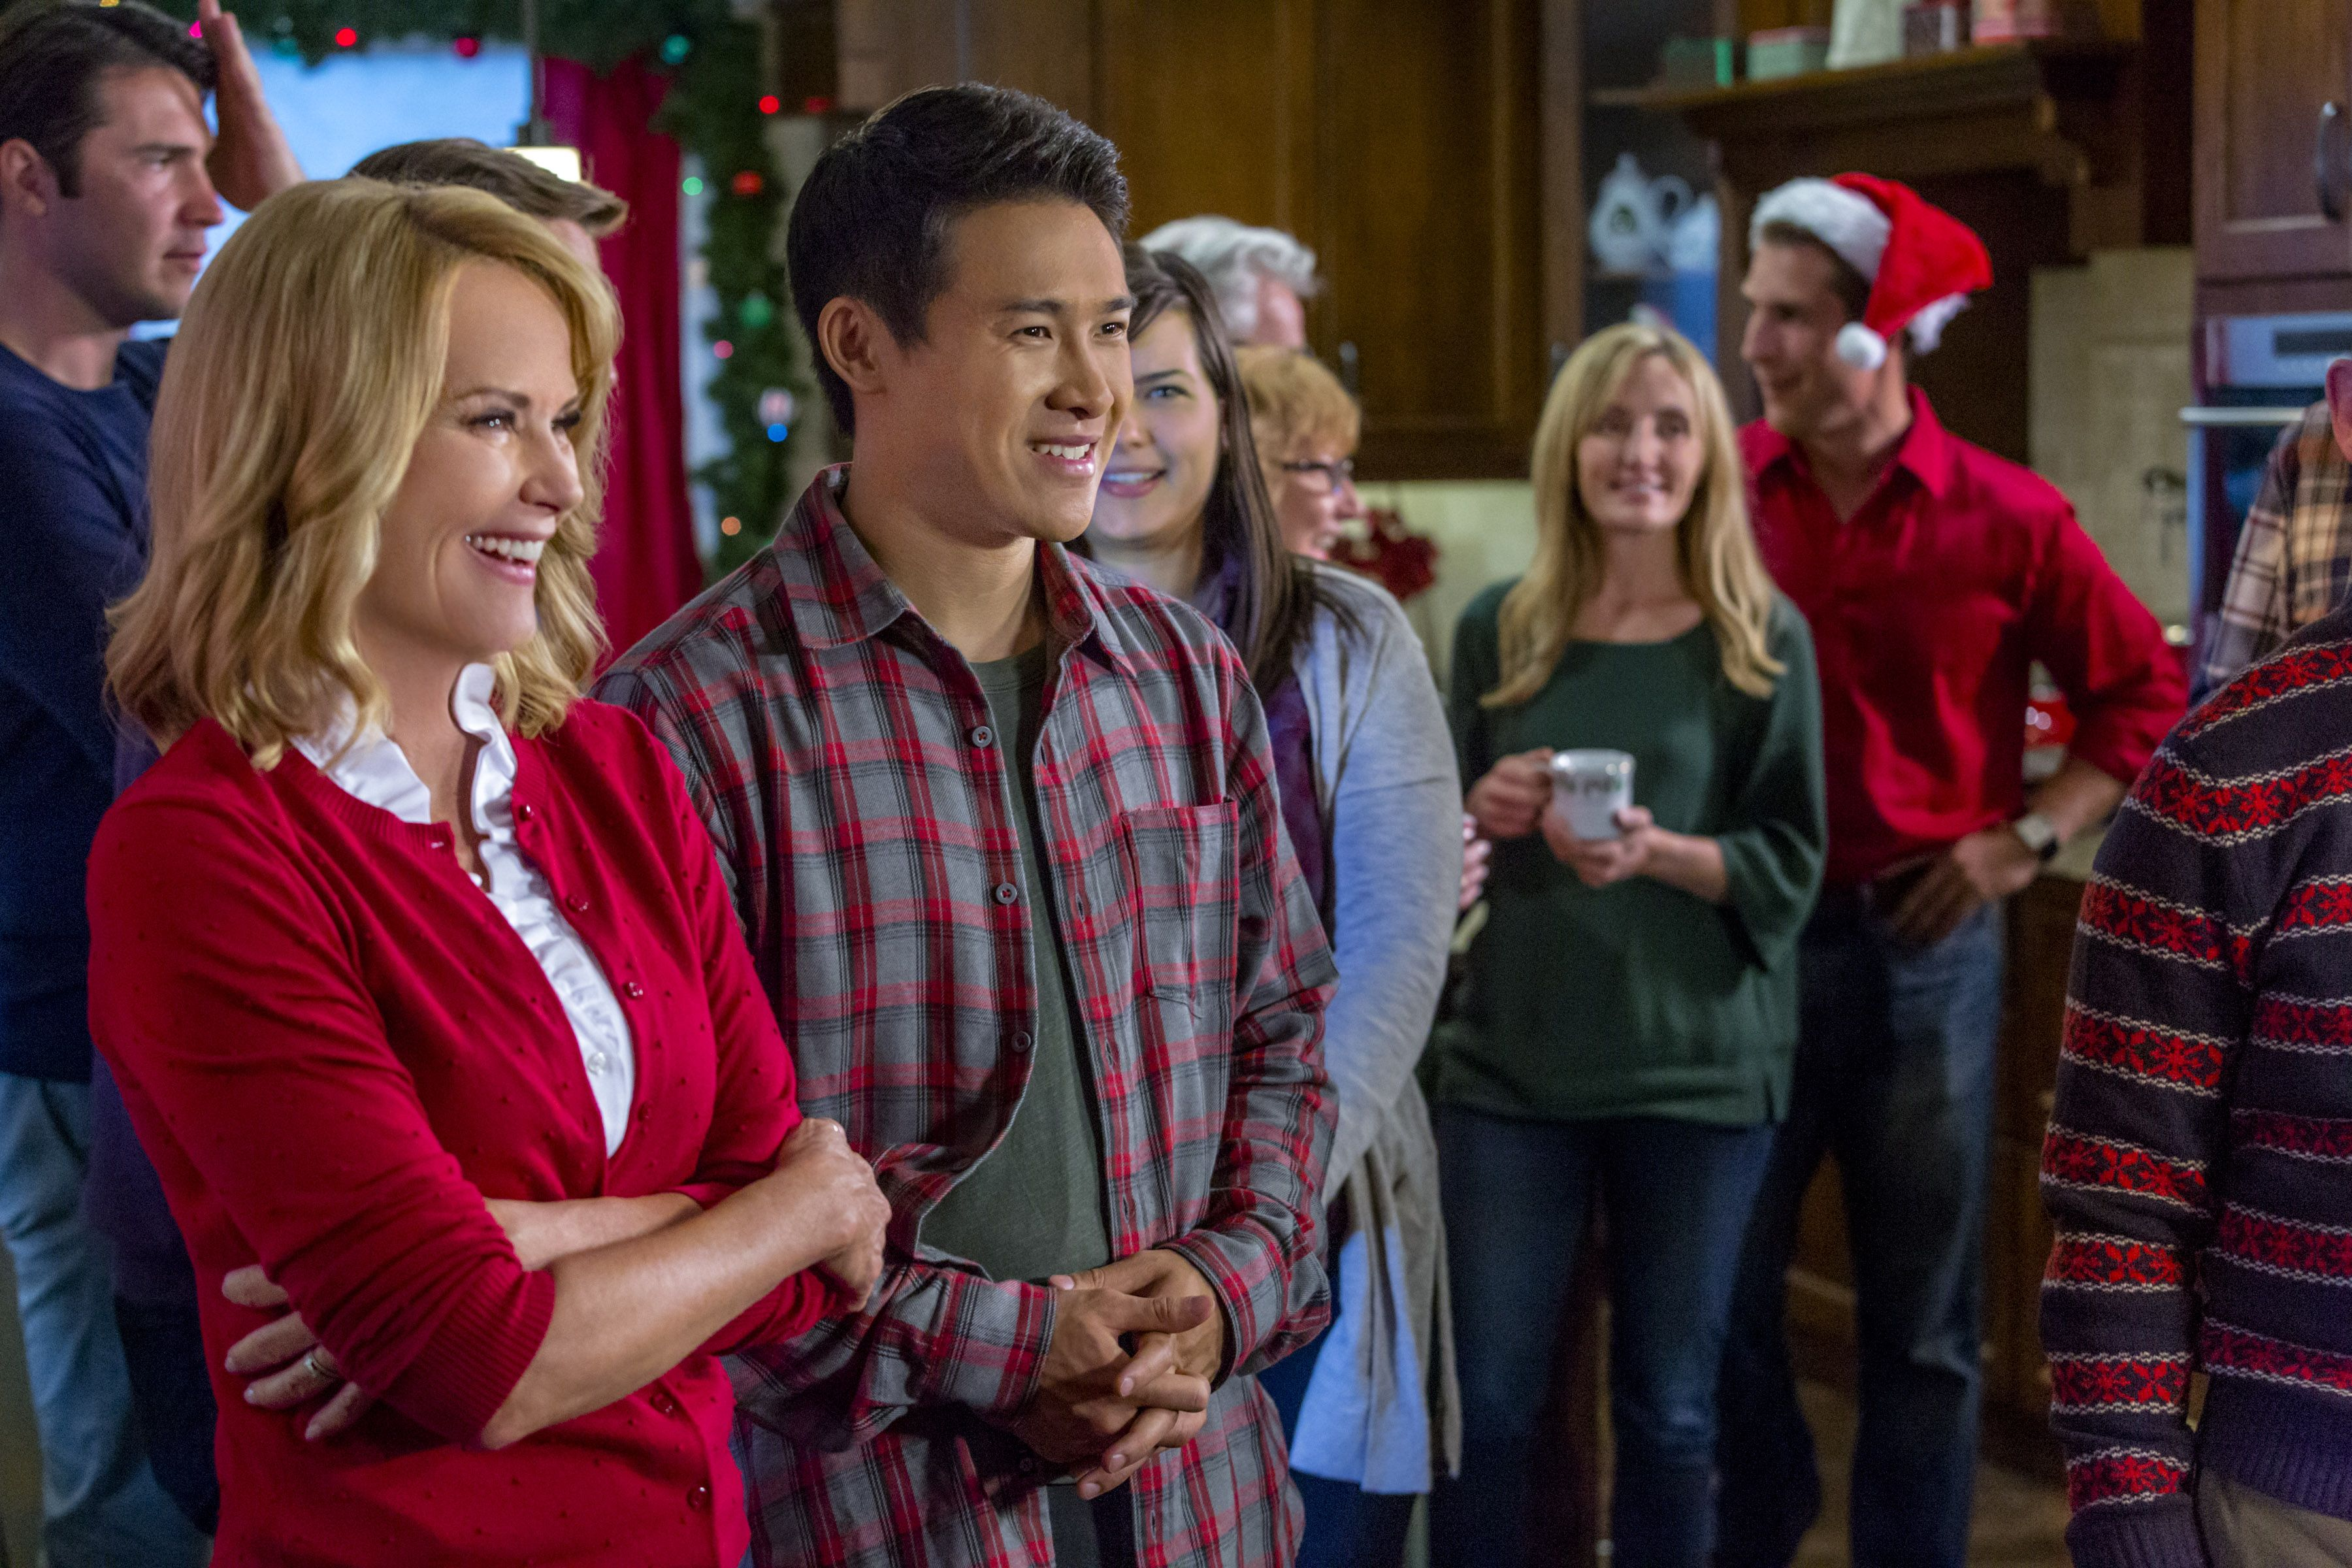 The Road To Christmas.Check Out Photos From The Hallmark Channel Movie Road To